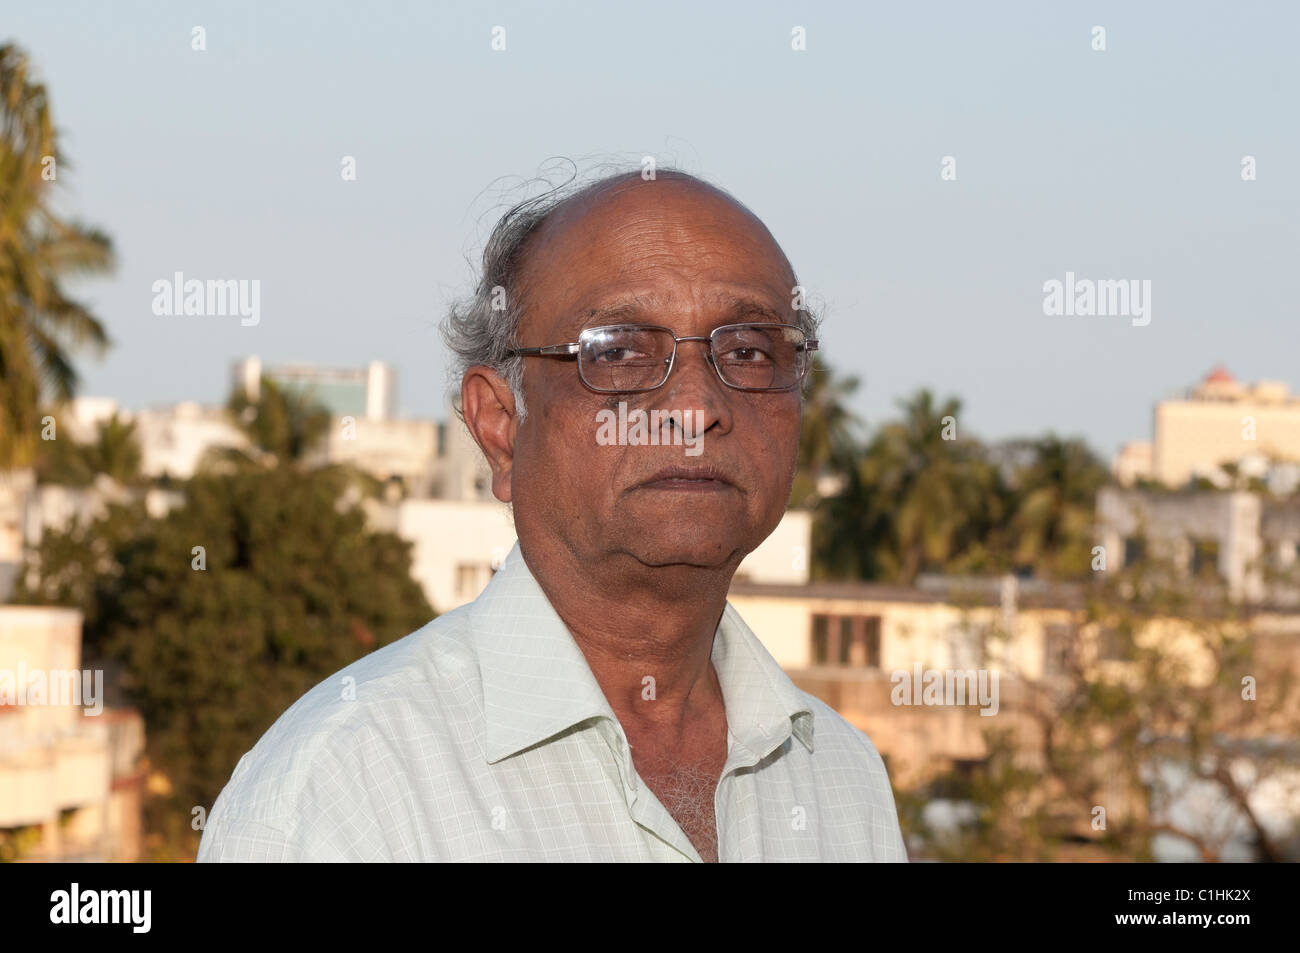 A Senior Indian Man Looking Very Sad Stock Photo 35423554